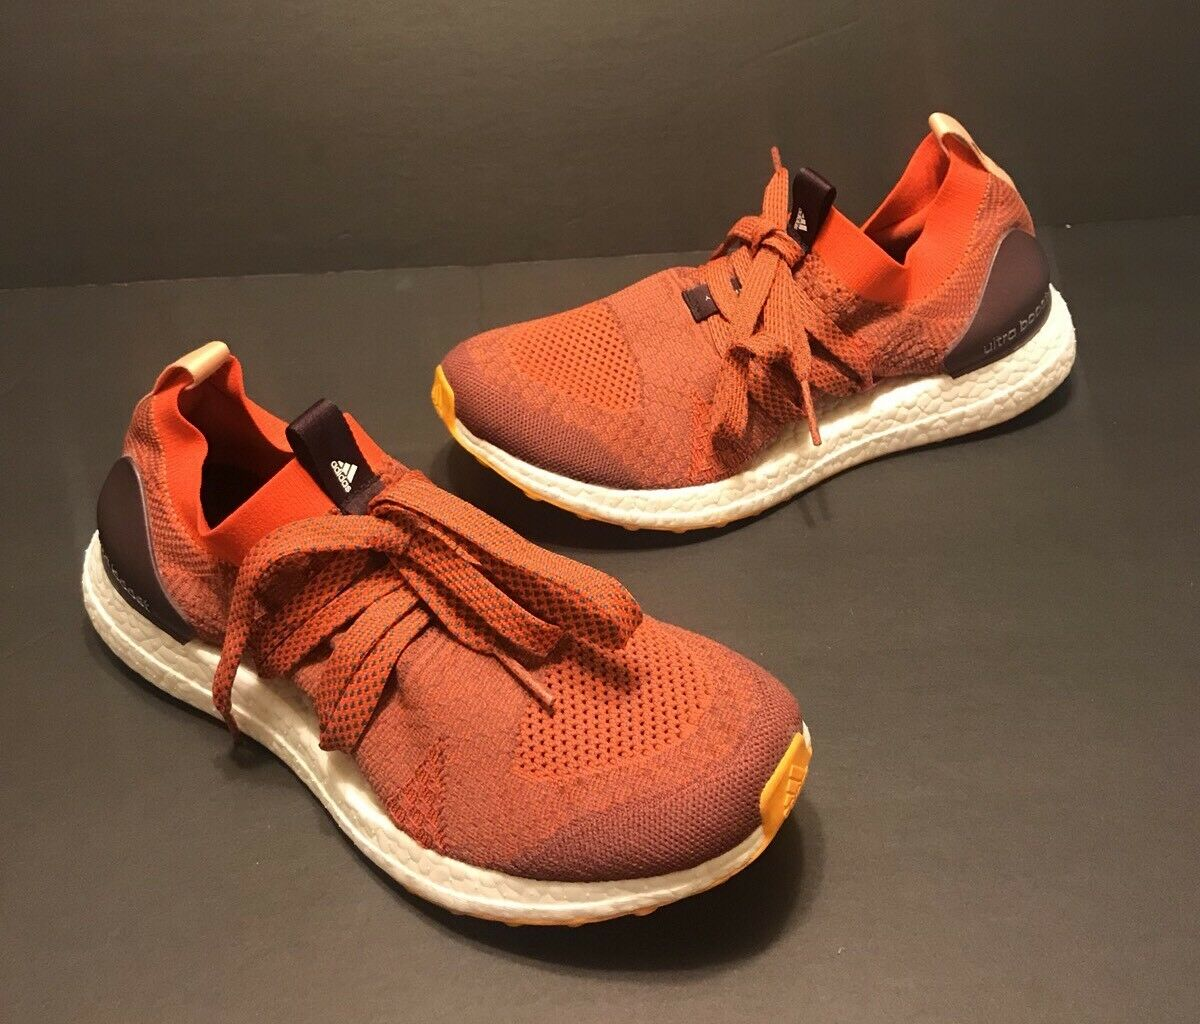 Womens Adidas Ultra Boost X Stella McCartney Running Shoes Orange Comfortable Wild casual shoes